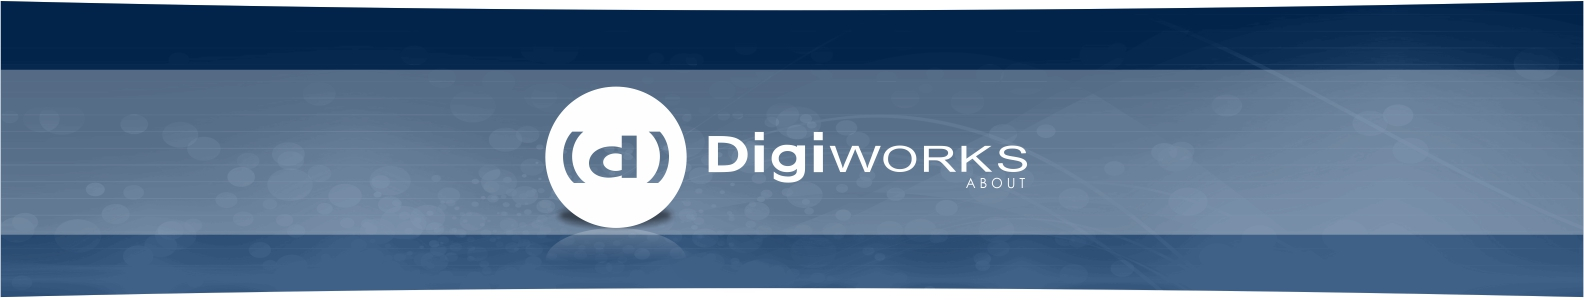 About DigiWorks